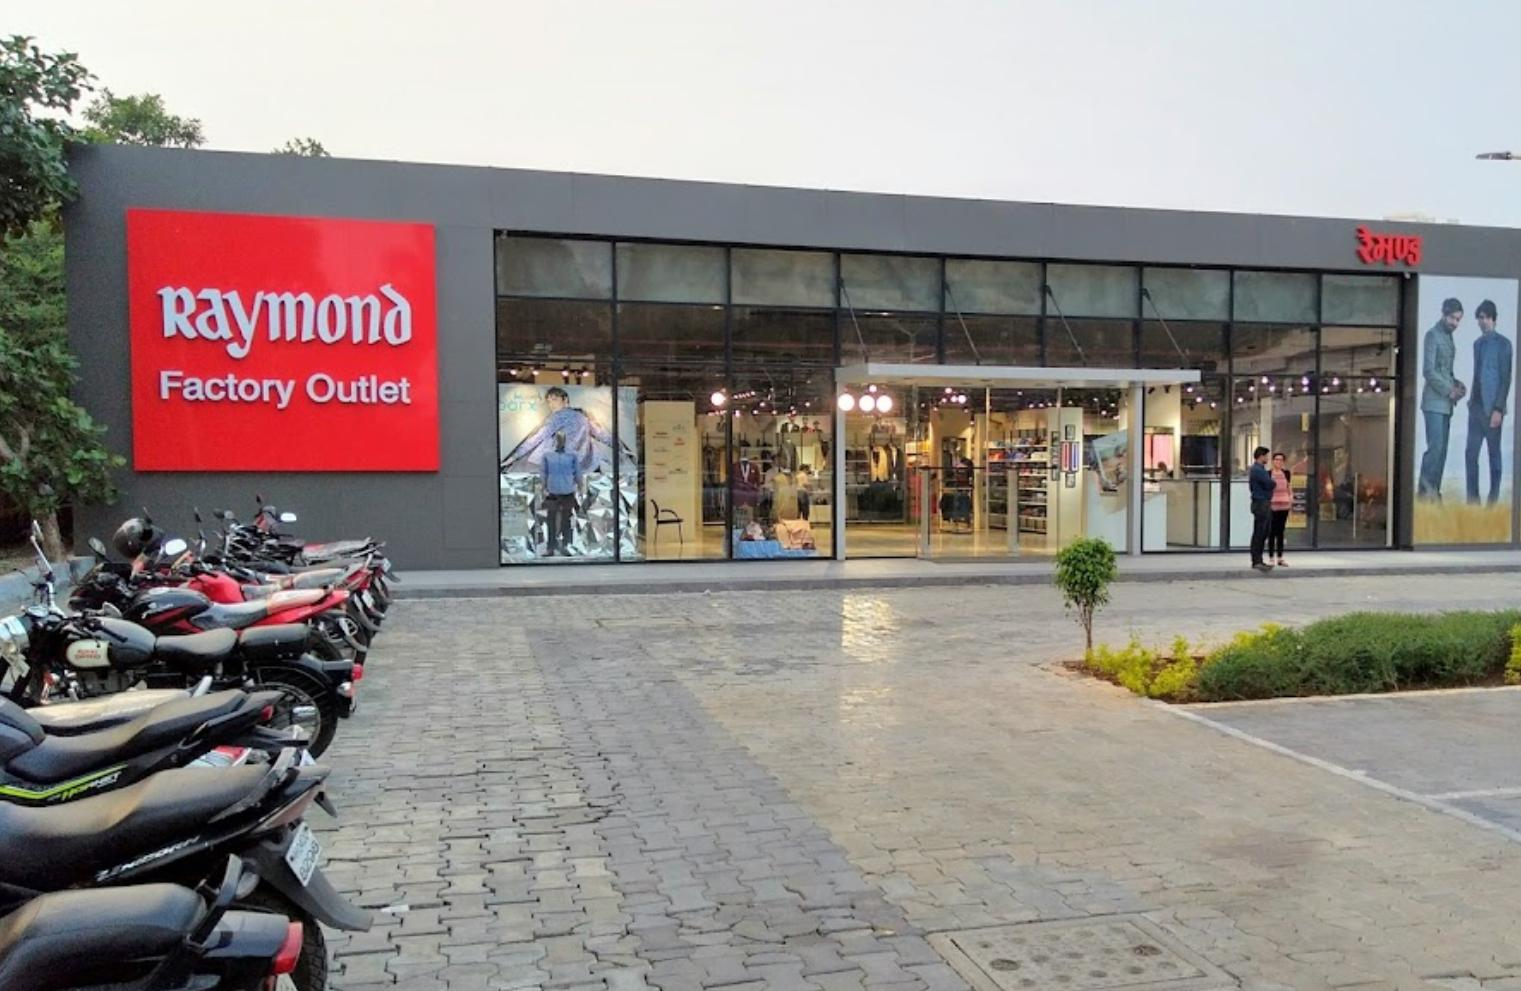 Post COVID, Raymond cancels demerger of apparels, to monetize real estate